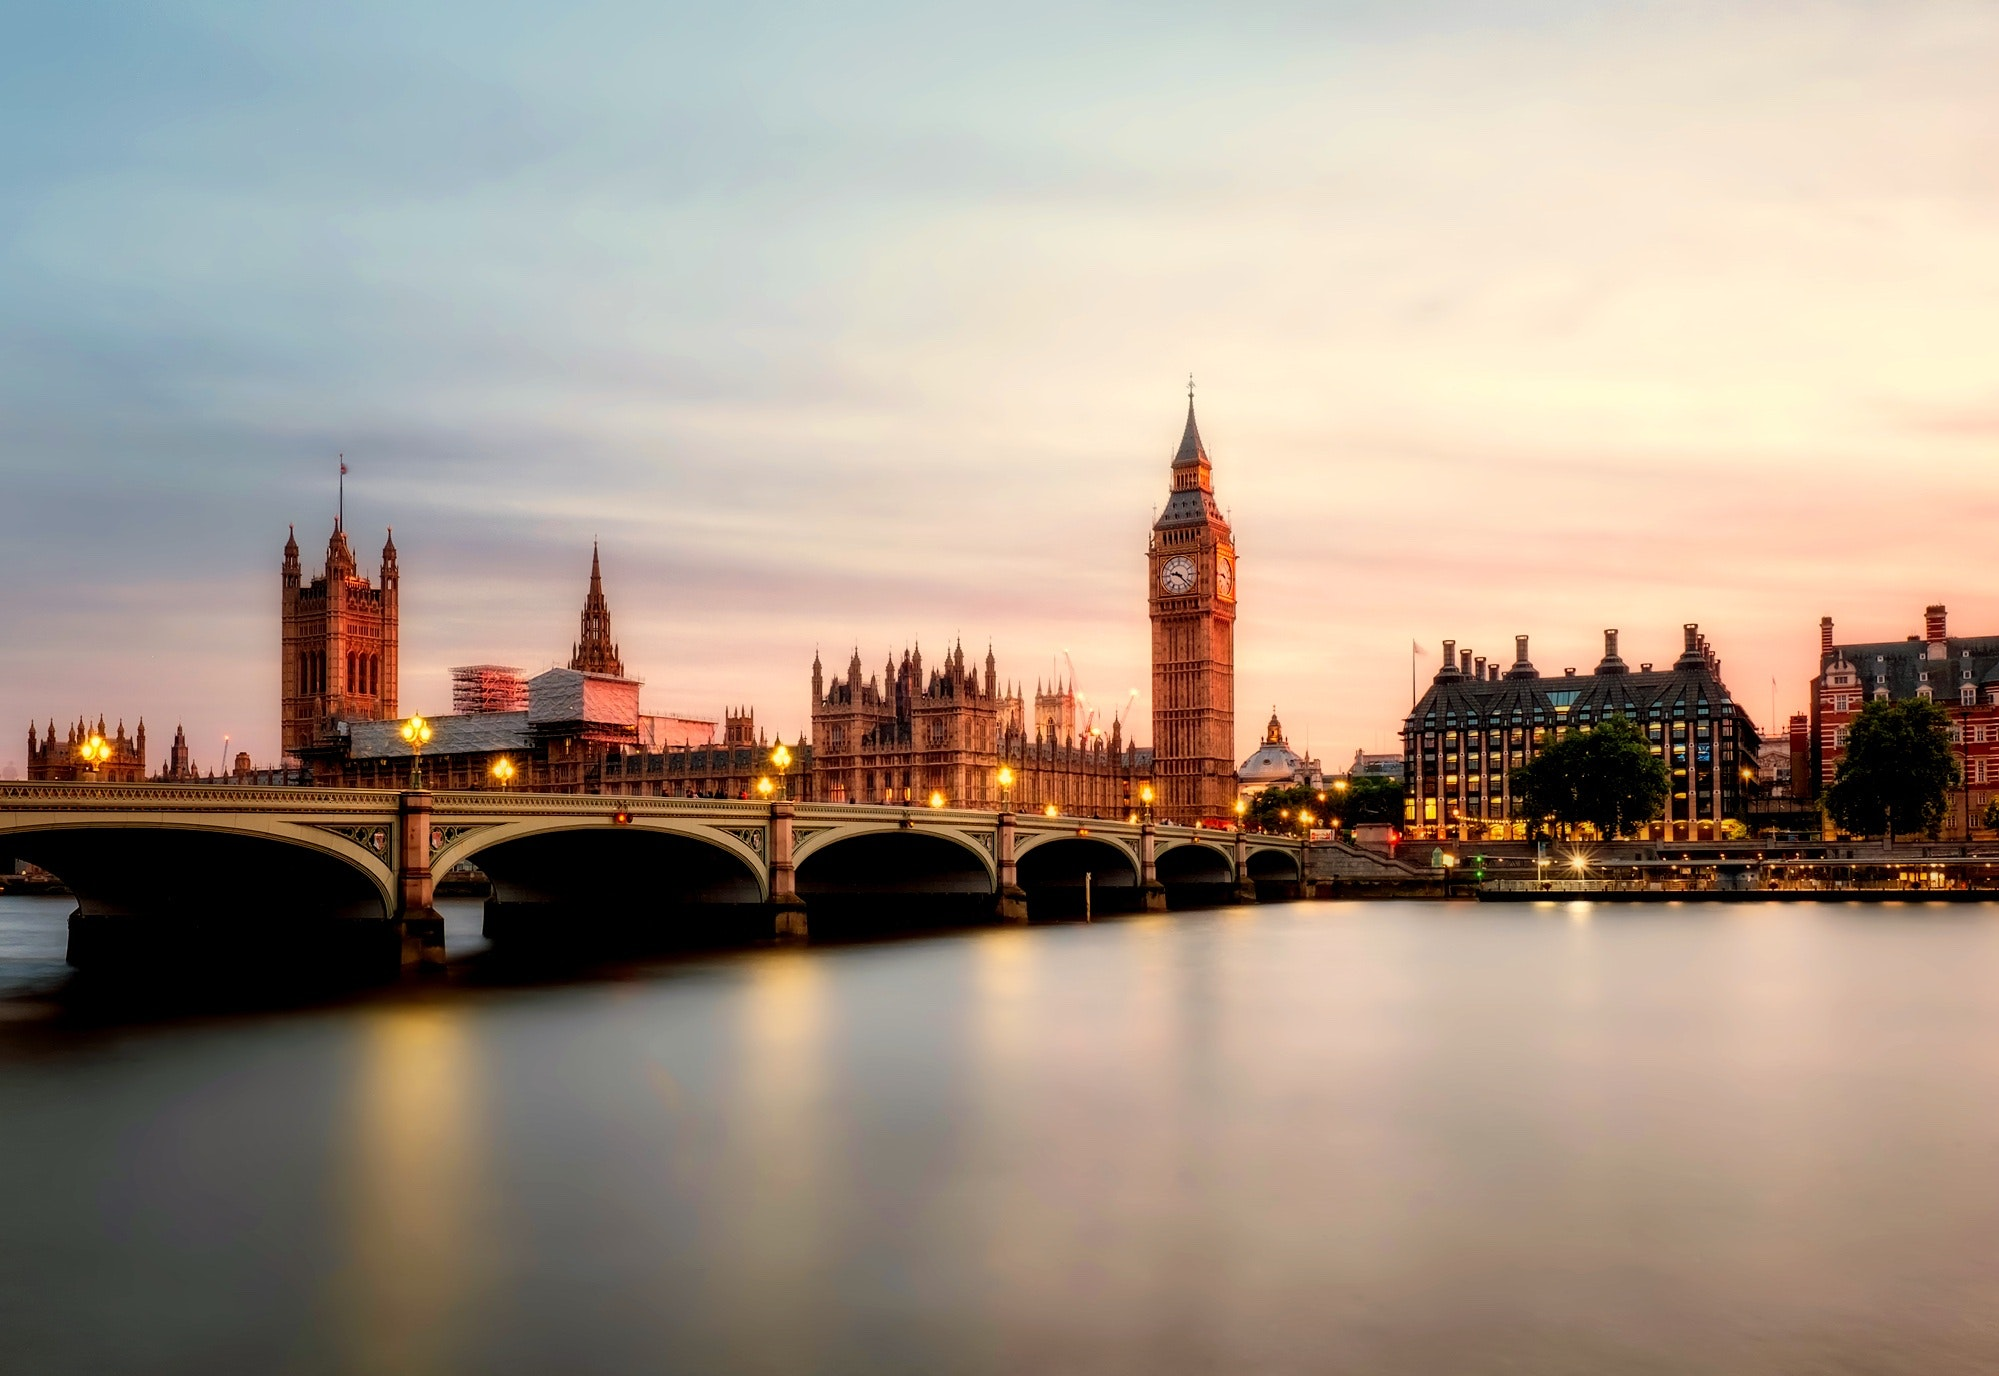 big-ben-bridge-castle-city-460672